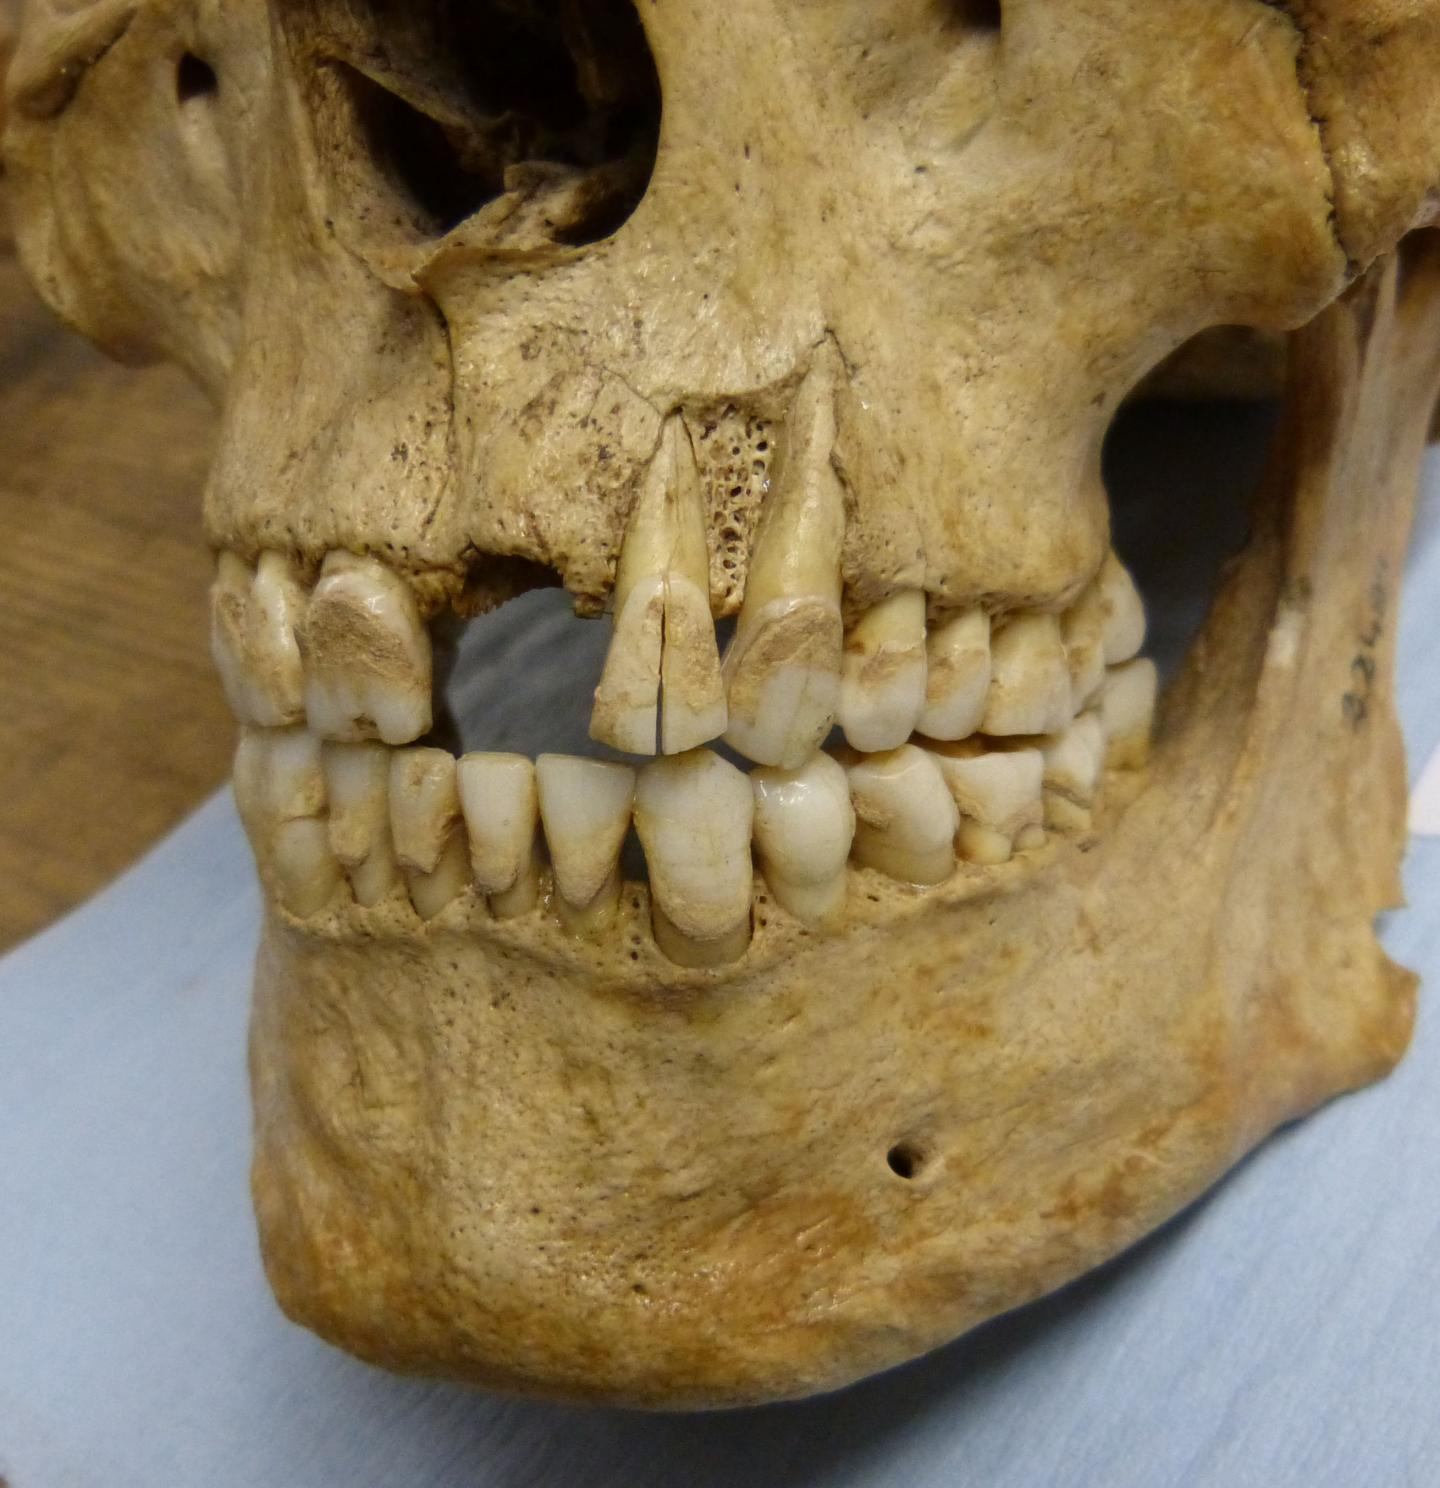 Learning About Ancient Diets From Modern British Teeth